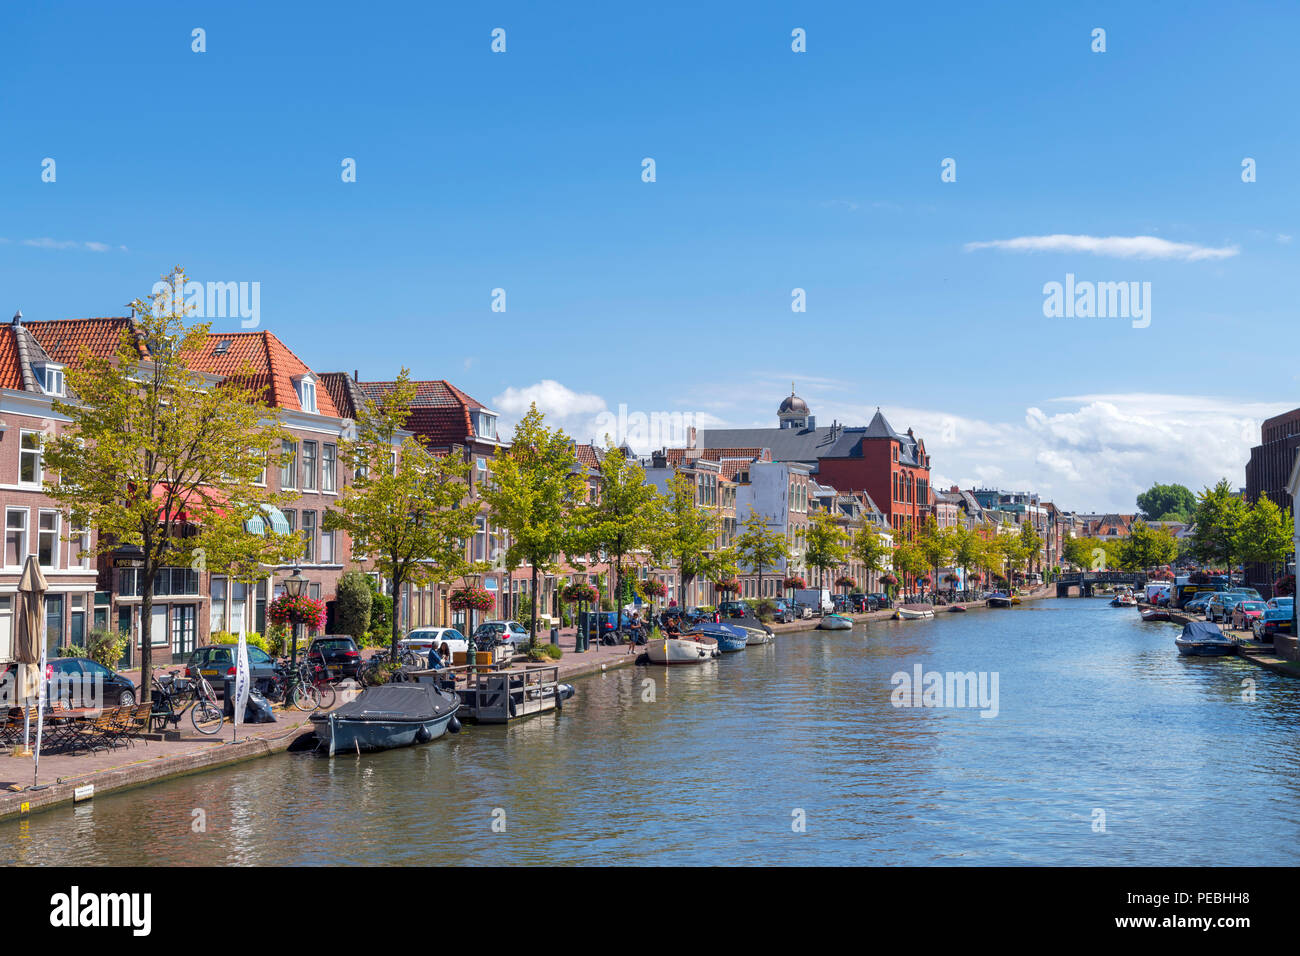 The Oude Rijn (Old Rhine) river in Leiden, Zuid-Holland (South Holland), Netherlands - Stock Image